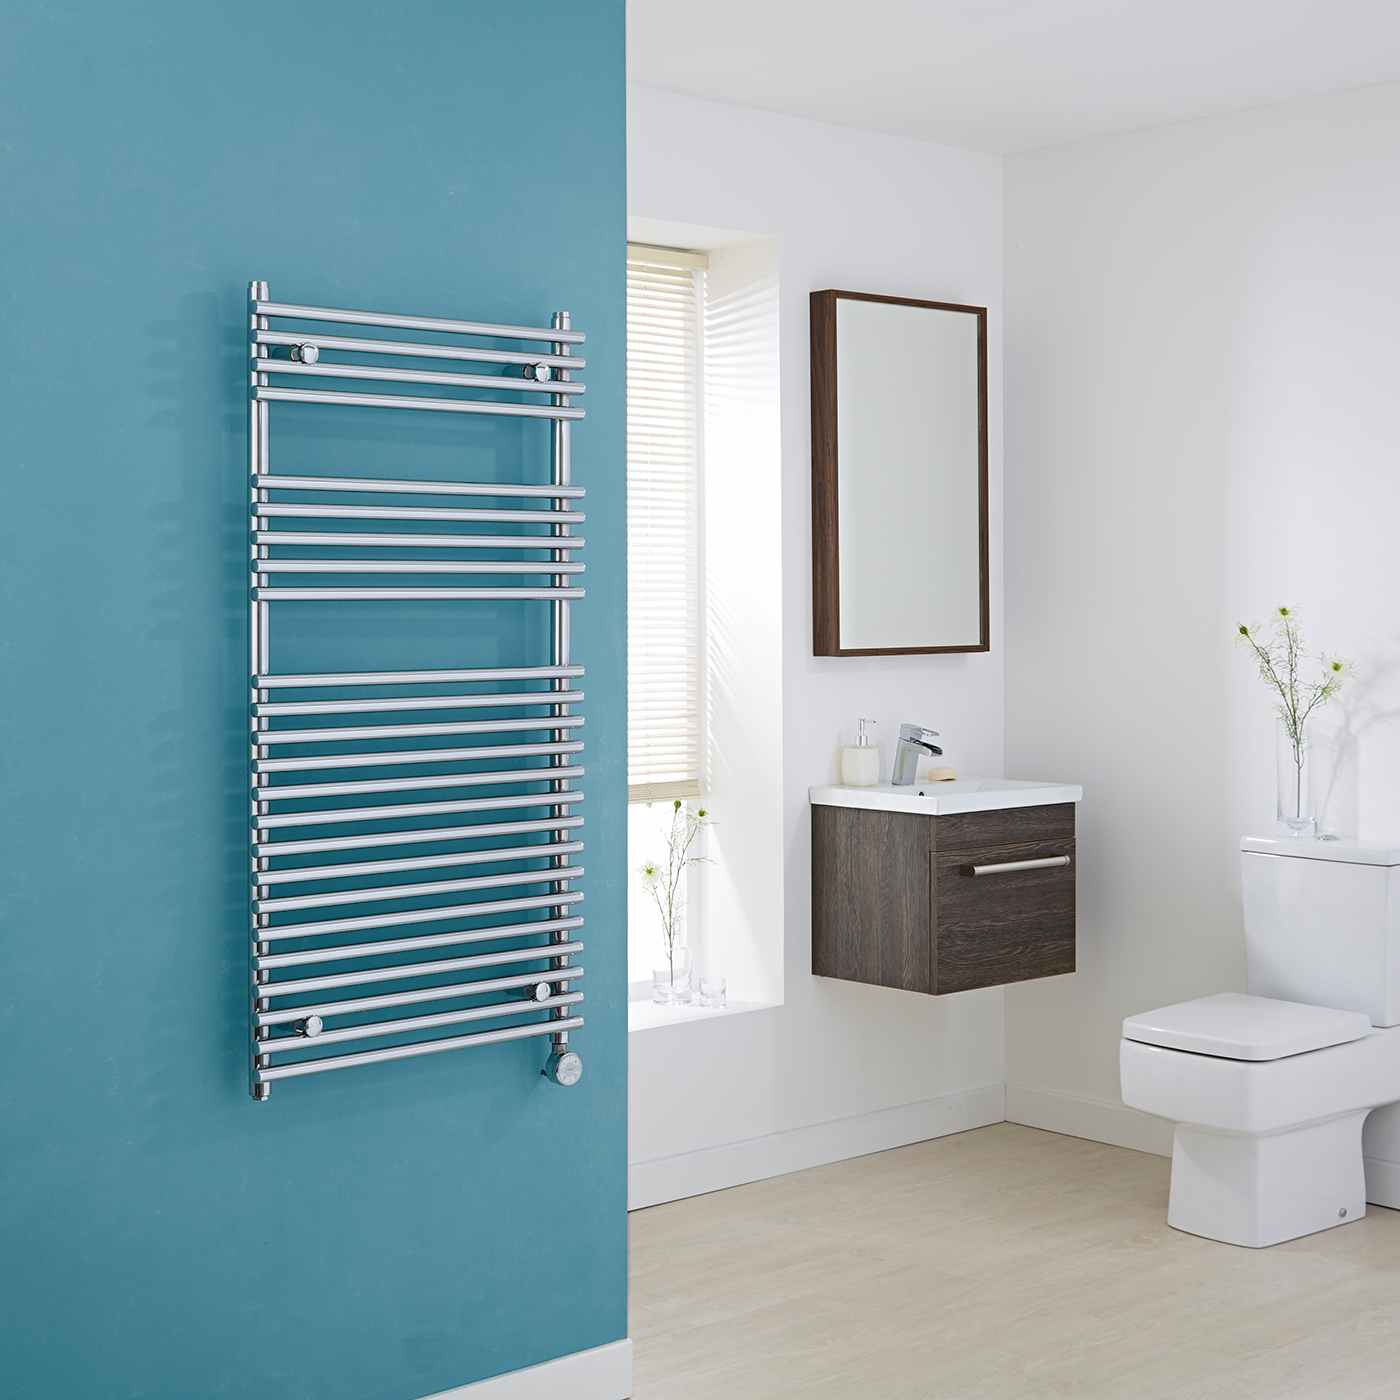 Kudox Electric - Flat Chrome Bar on Bar Towel Rail 1150mm x 600mm